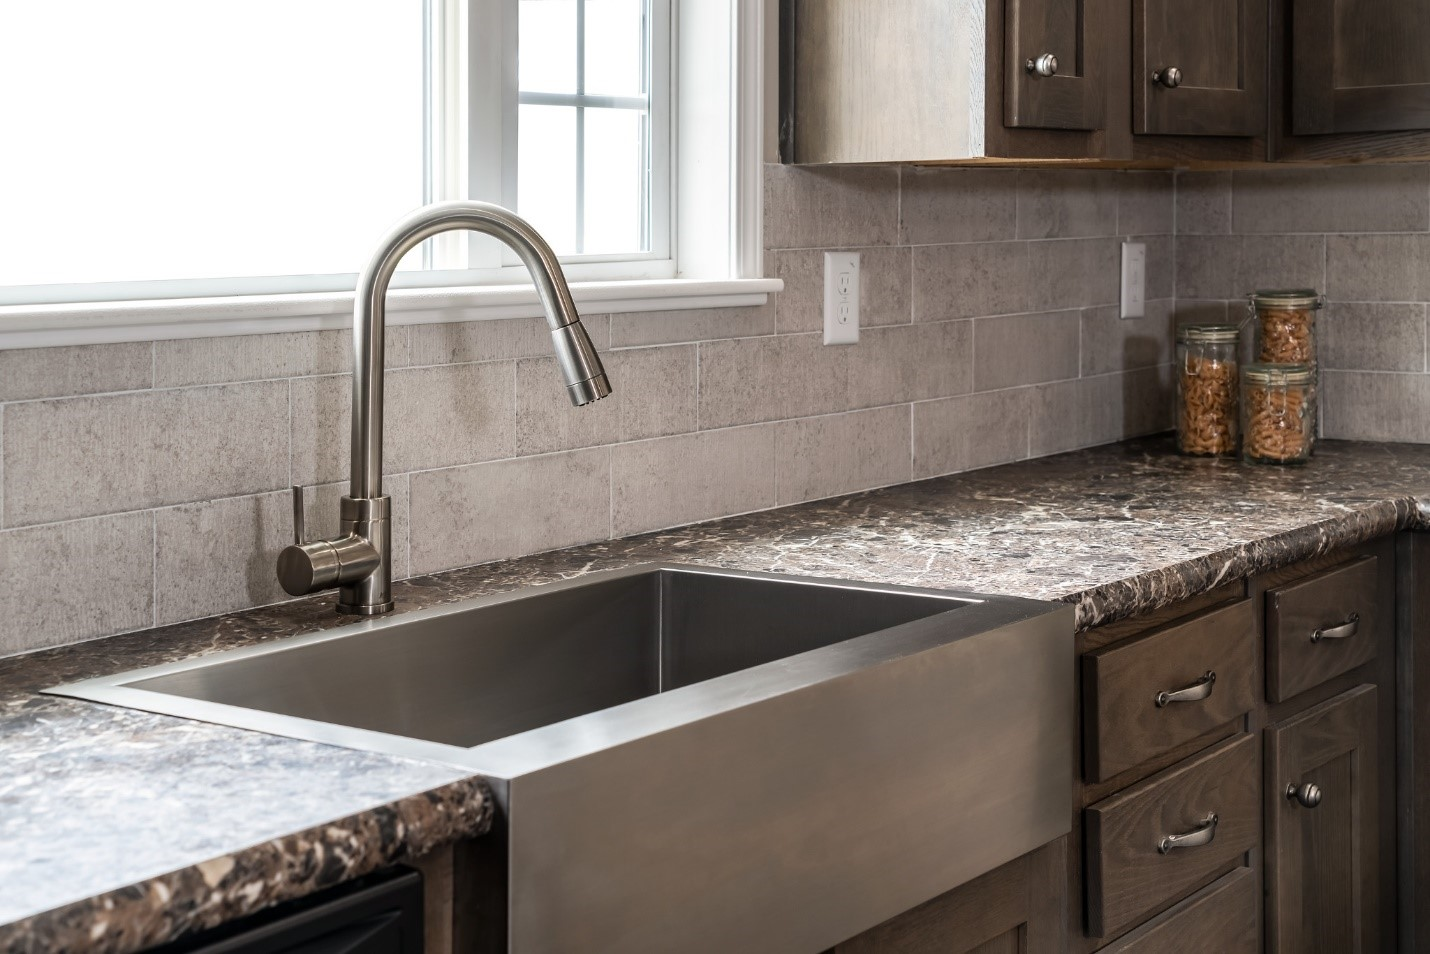 Ways to Clean Kitchen Sinks: 6 Different Sink Materials